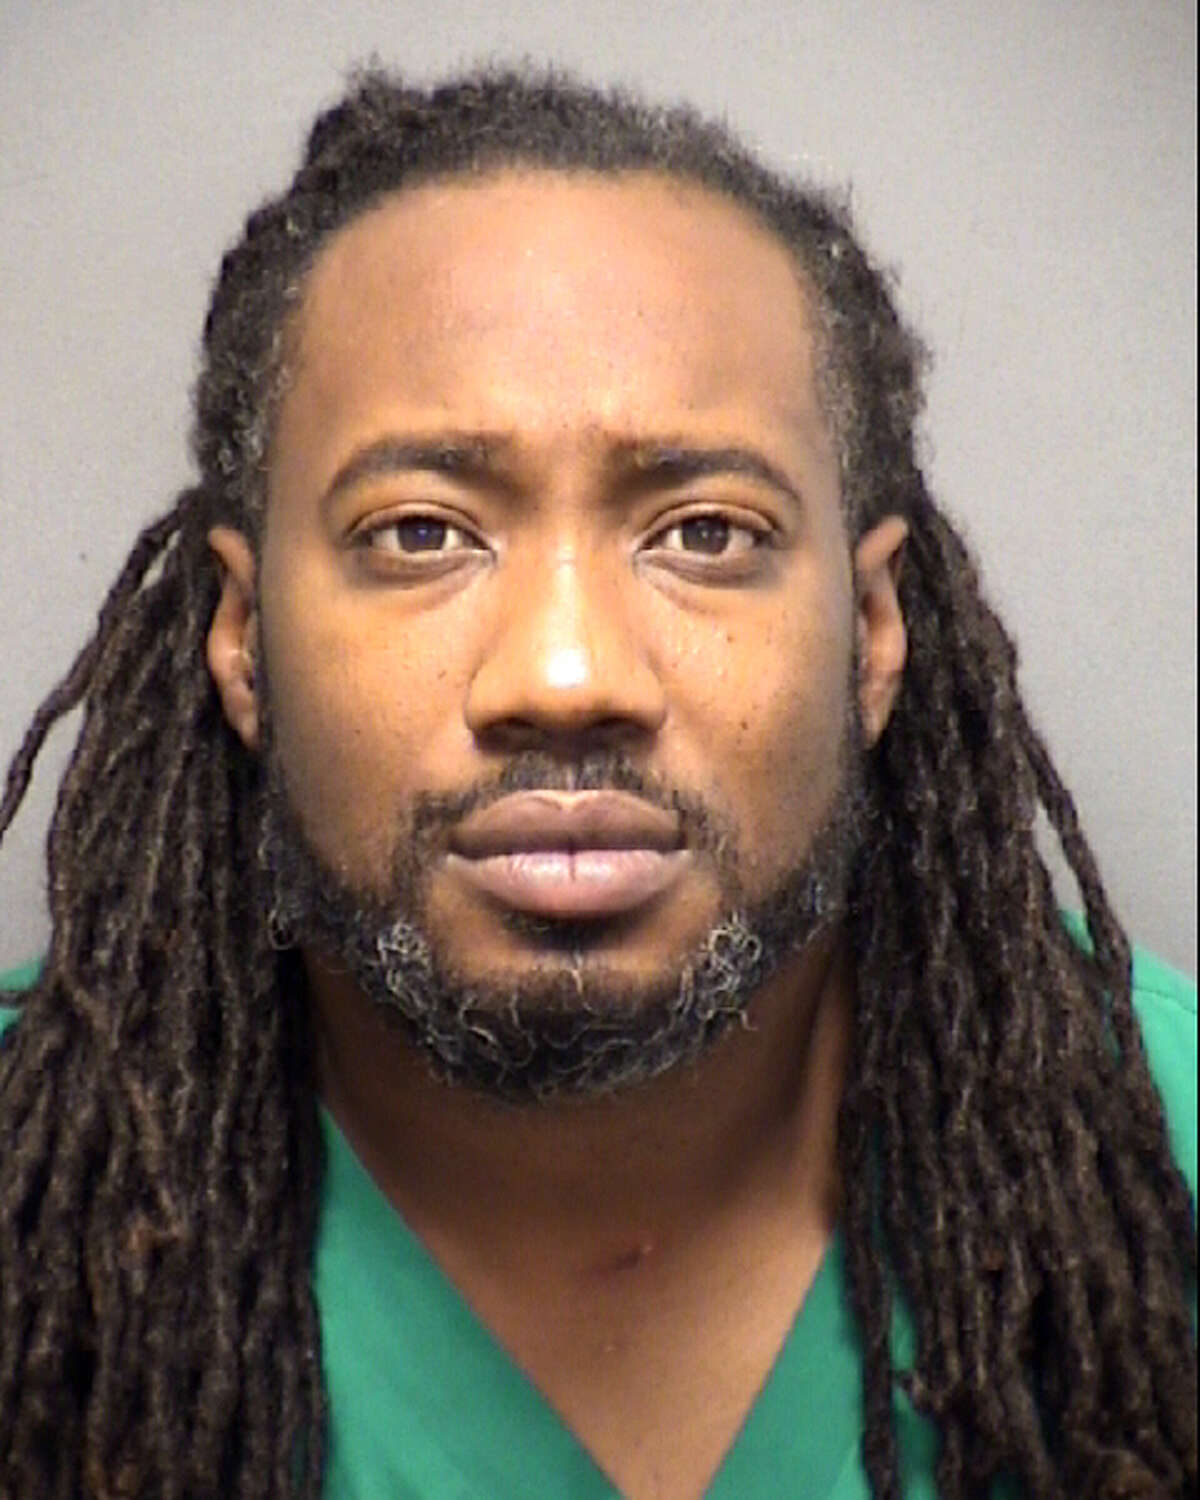 Kendall Blount, 36, was charged with aggravated assault causing serious bodily injury.